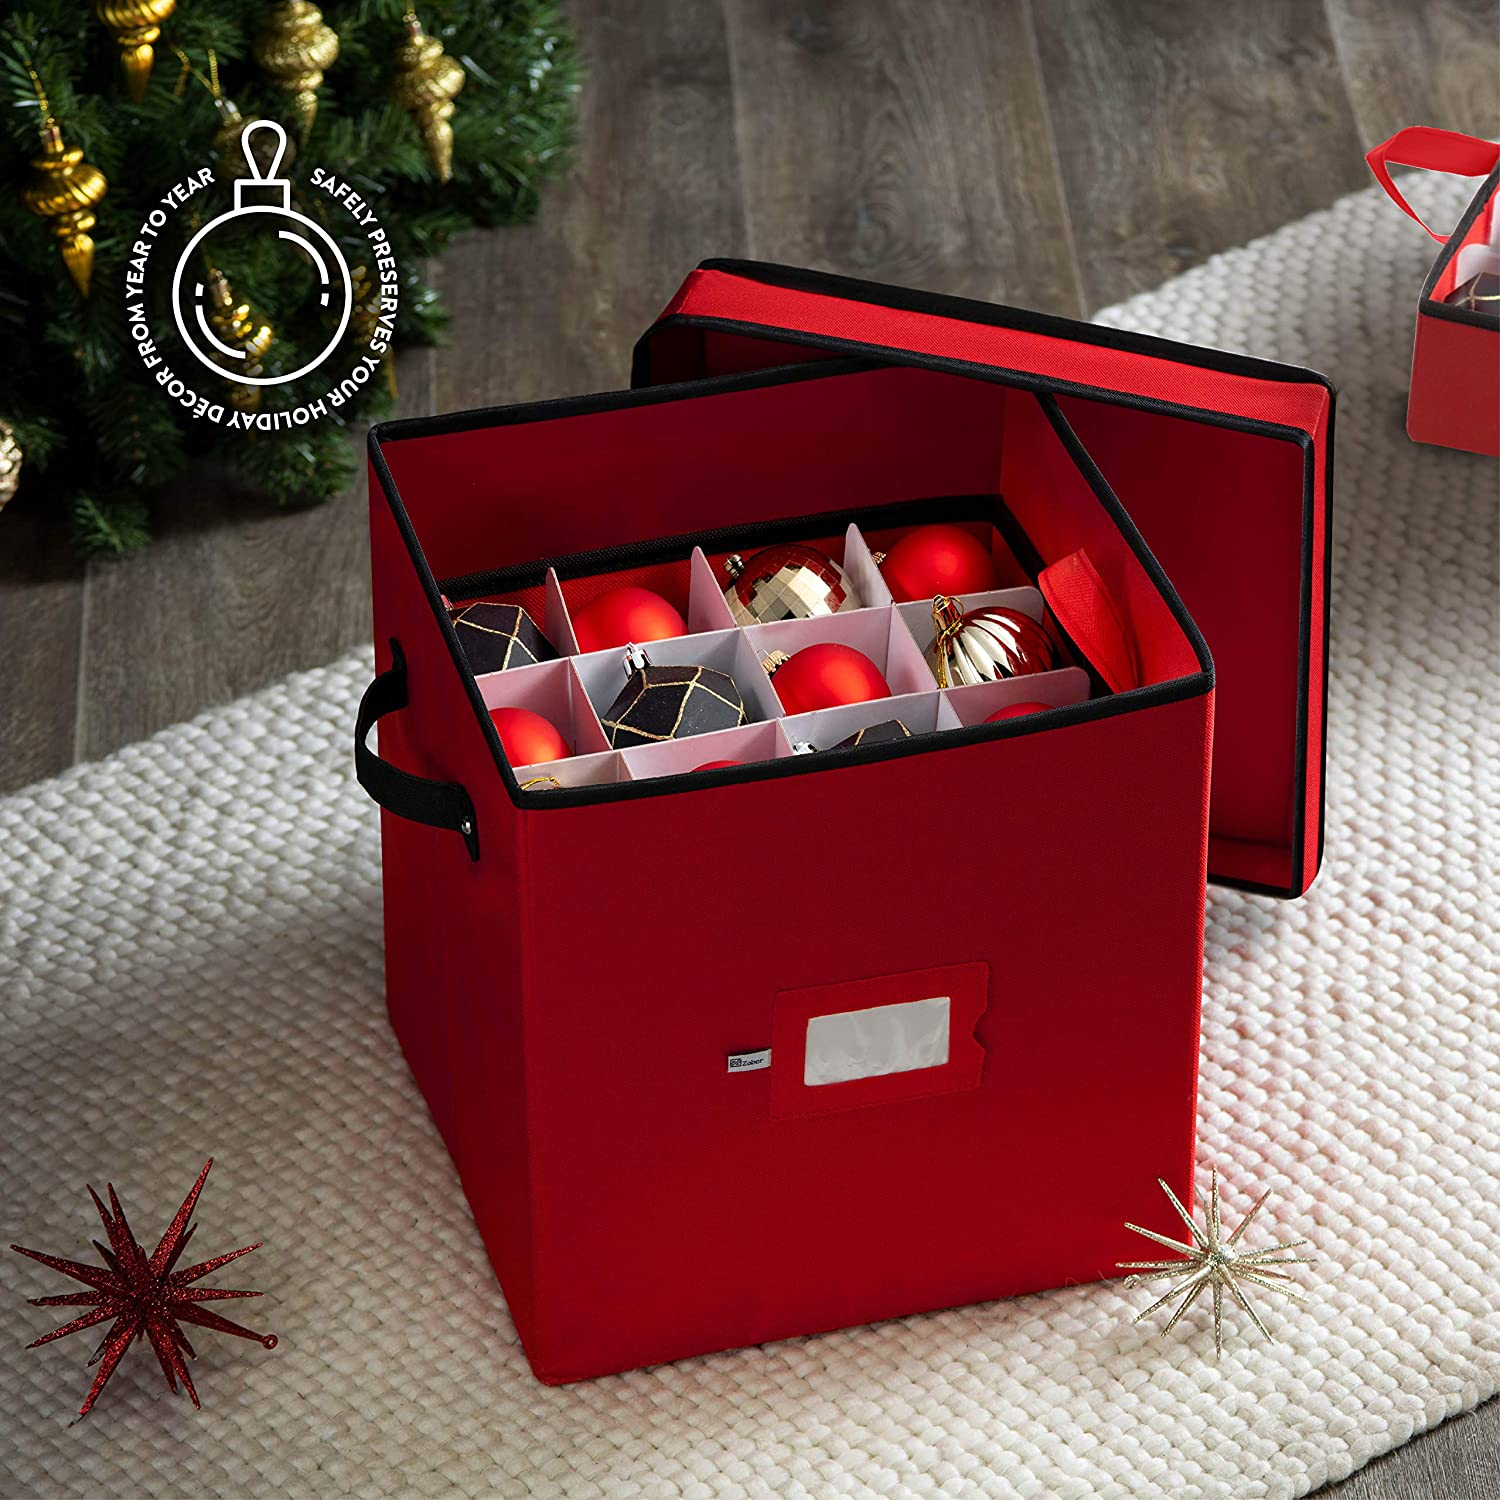 Christmas Ornament Storage Box with Lid for 64 Ornaments, Polyester 13.5